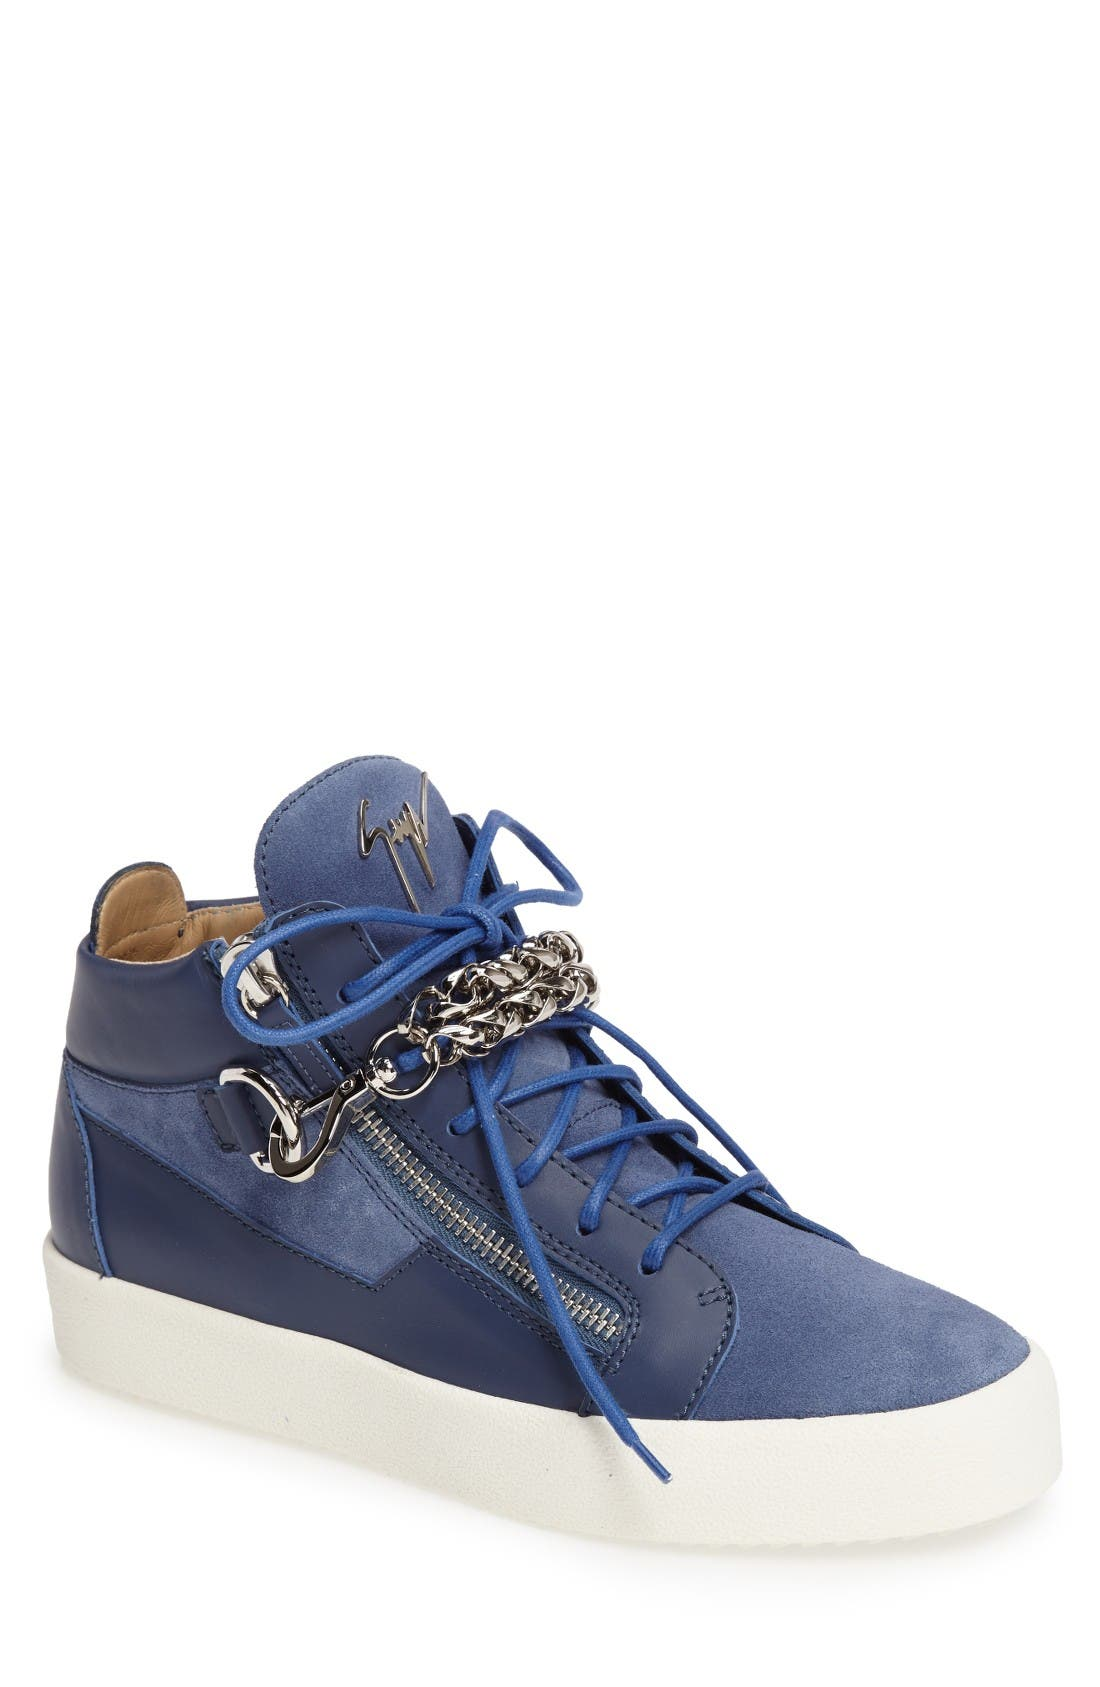 Chain Mid Top Sneaker,                         Main,                         color, Blue Suede/ Leather